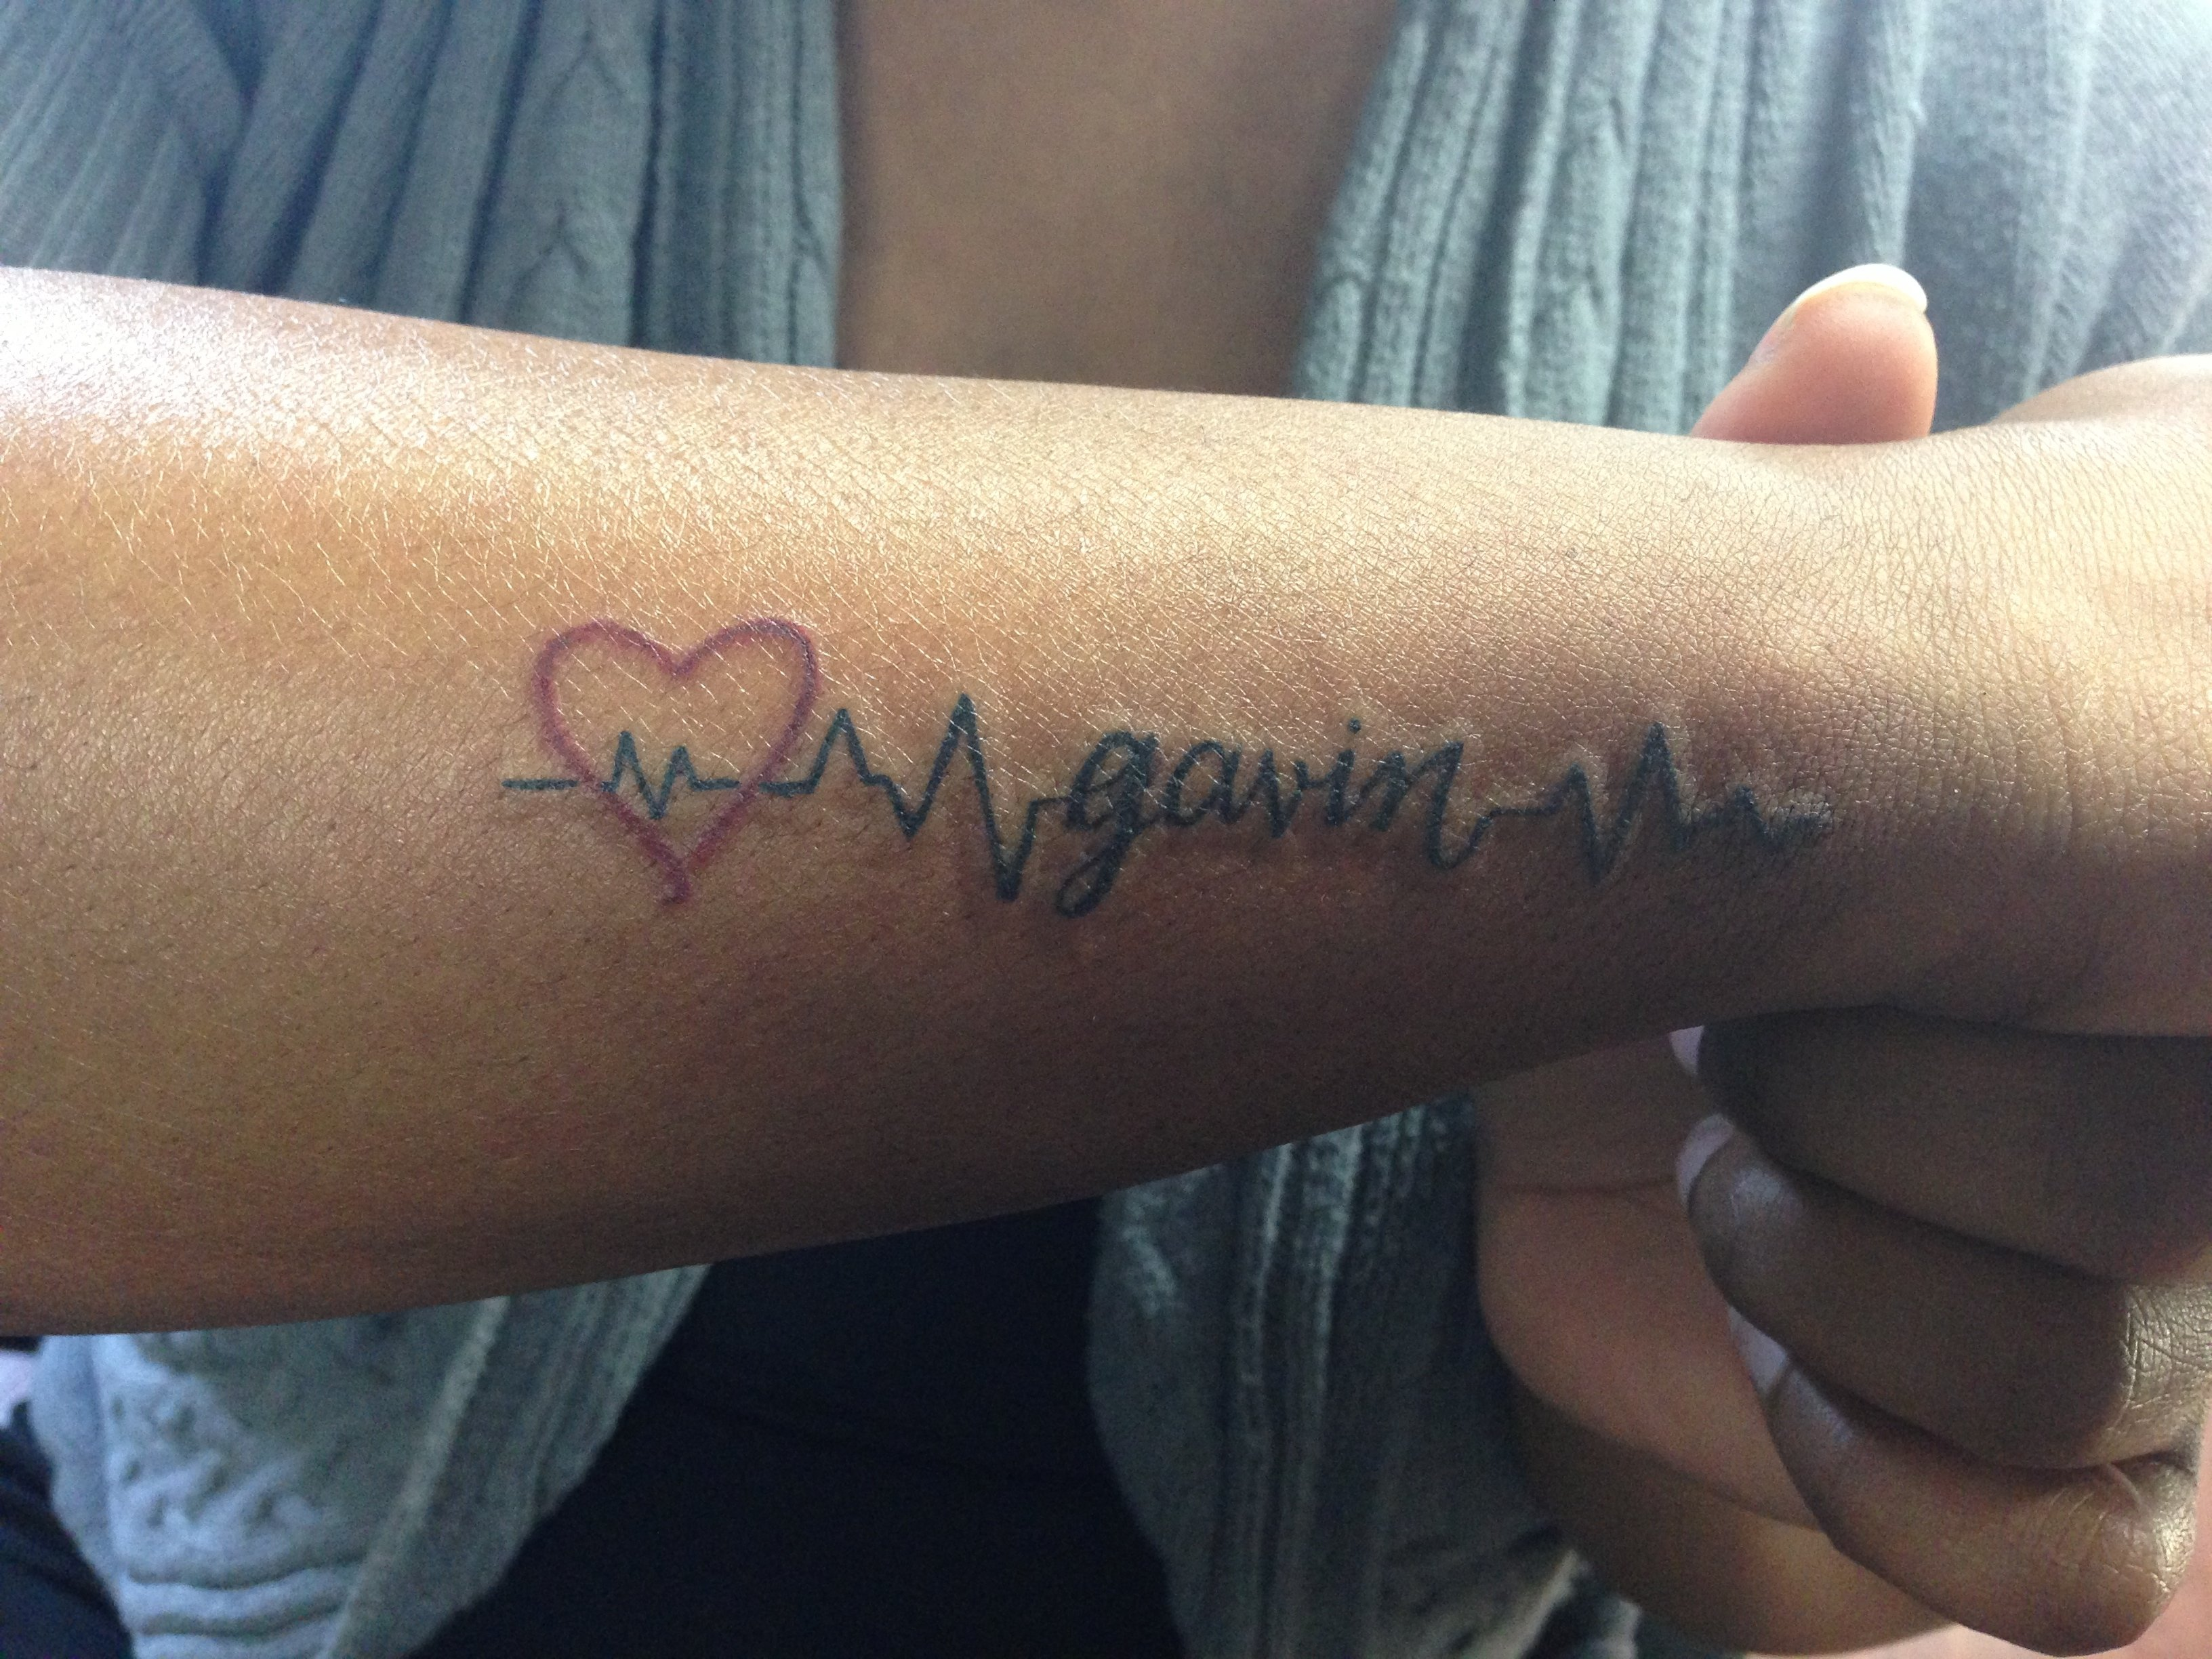 10 Fashionable Tattoo Ideas For Baby Names 11 tattoos to show your love for your kids that are more than just